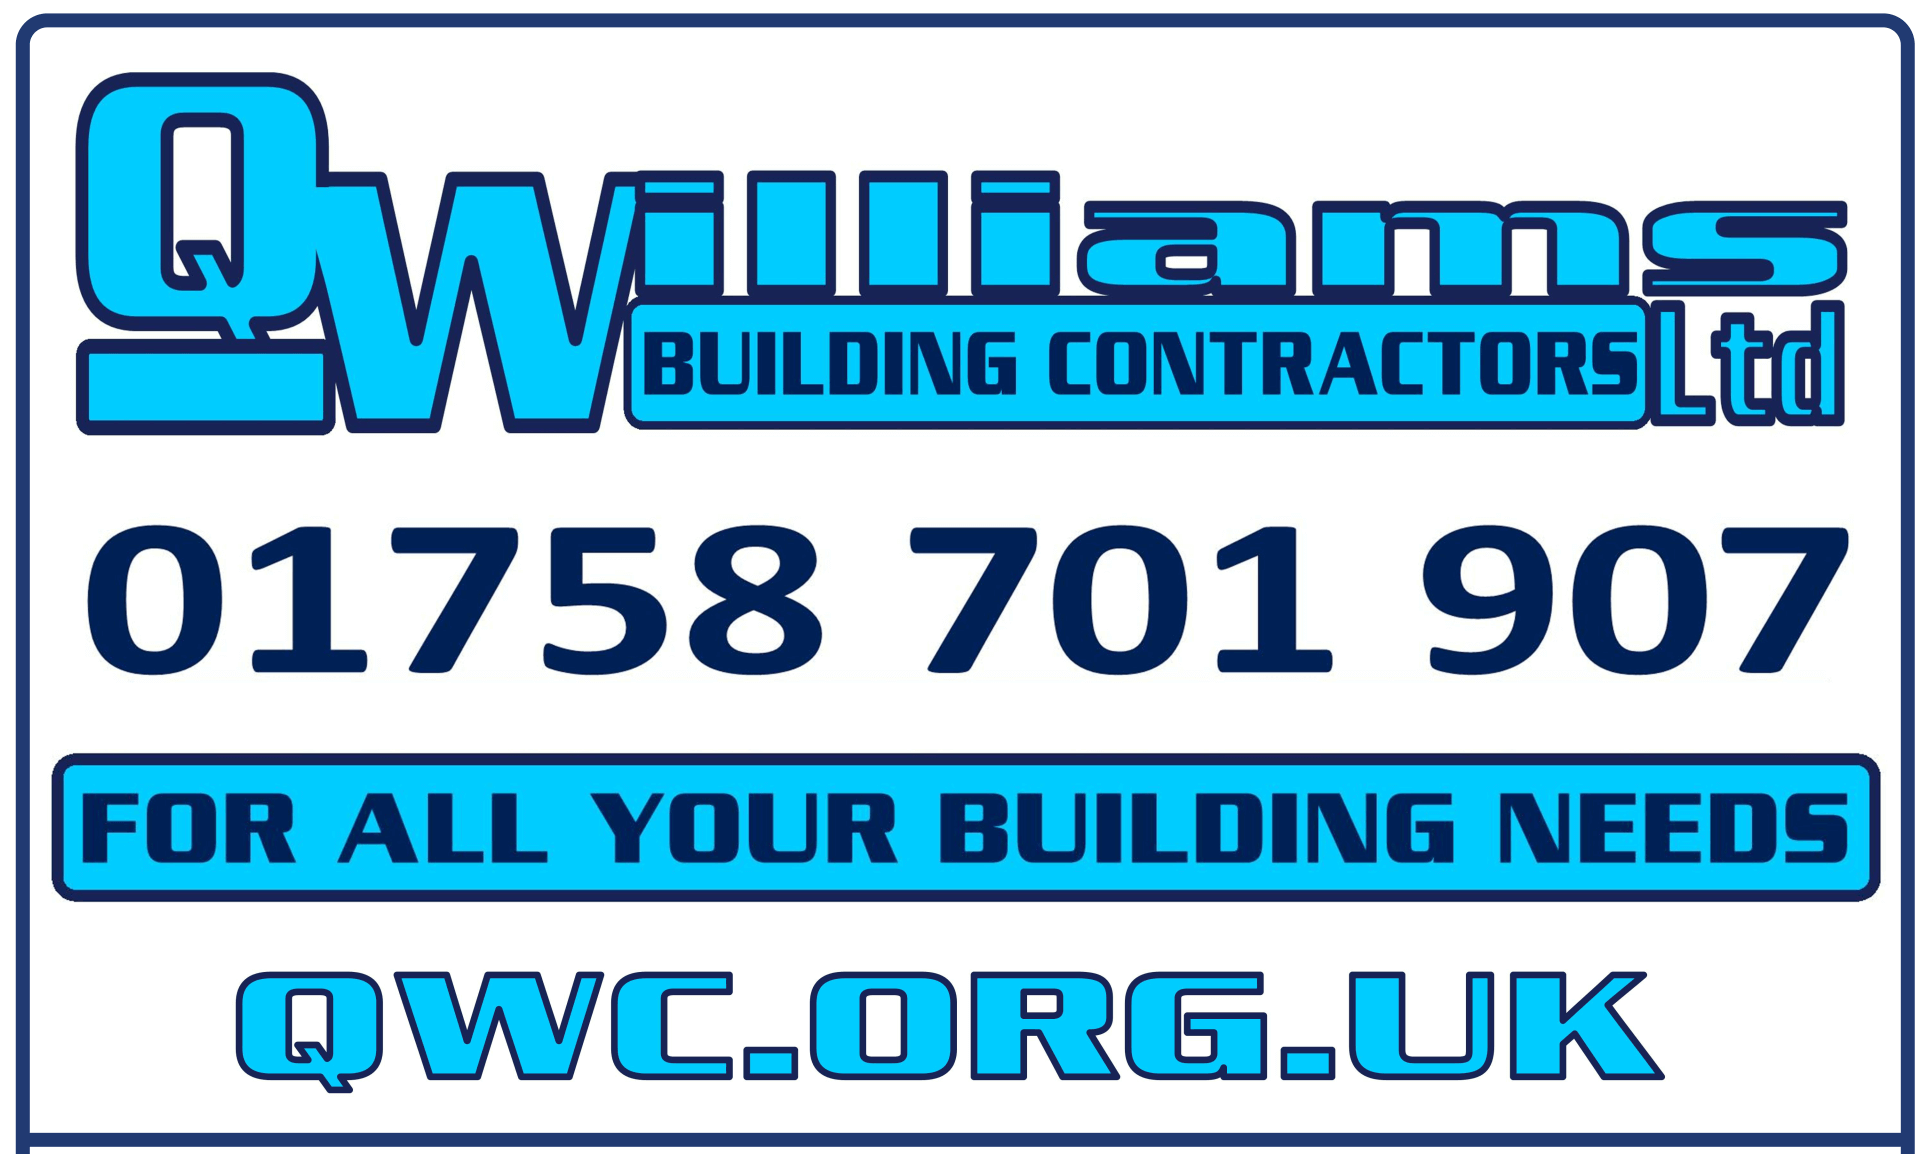 Quinton Williams Builders Logo